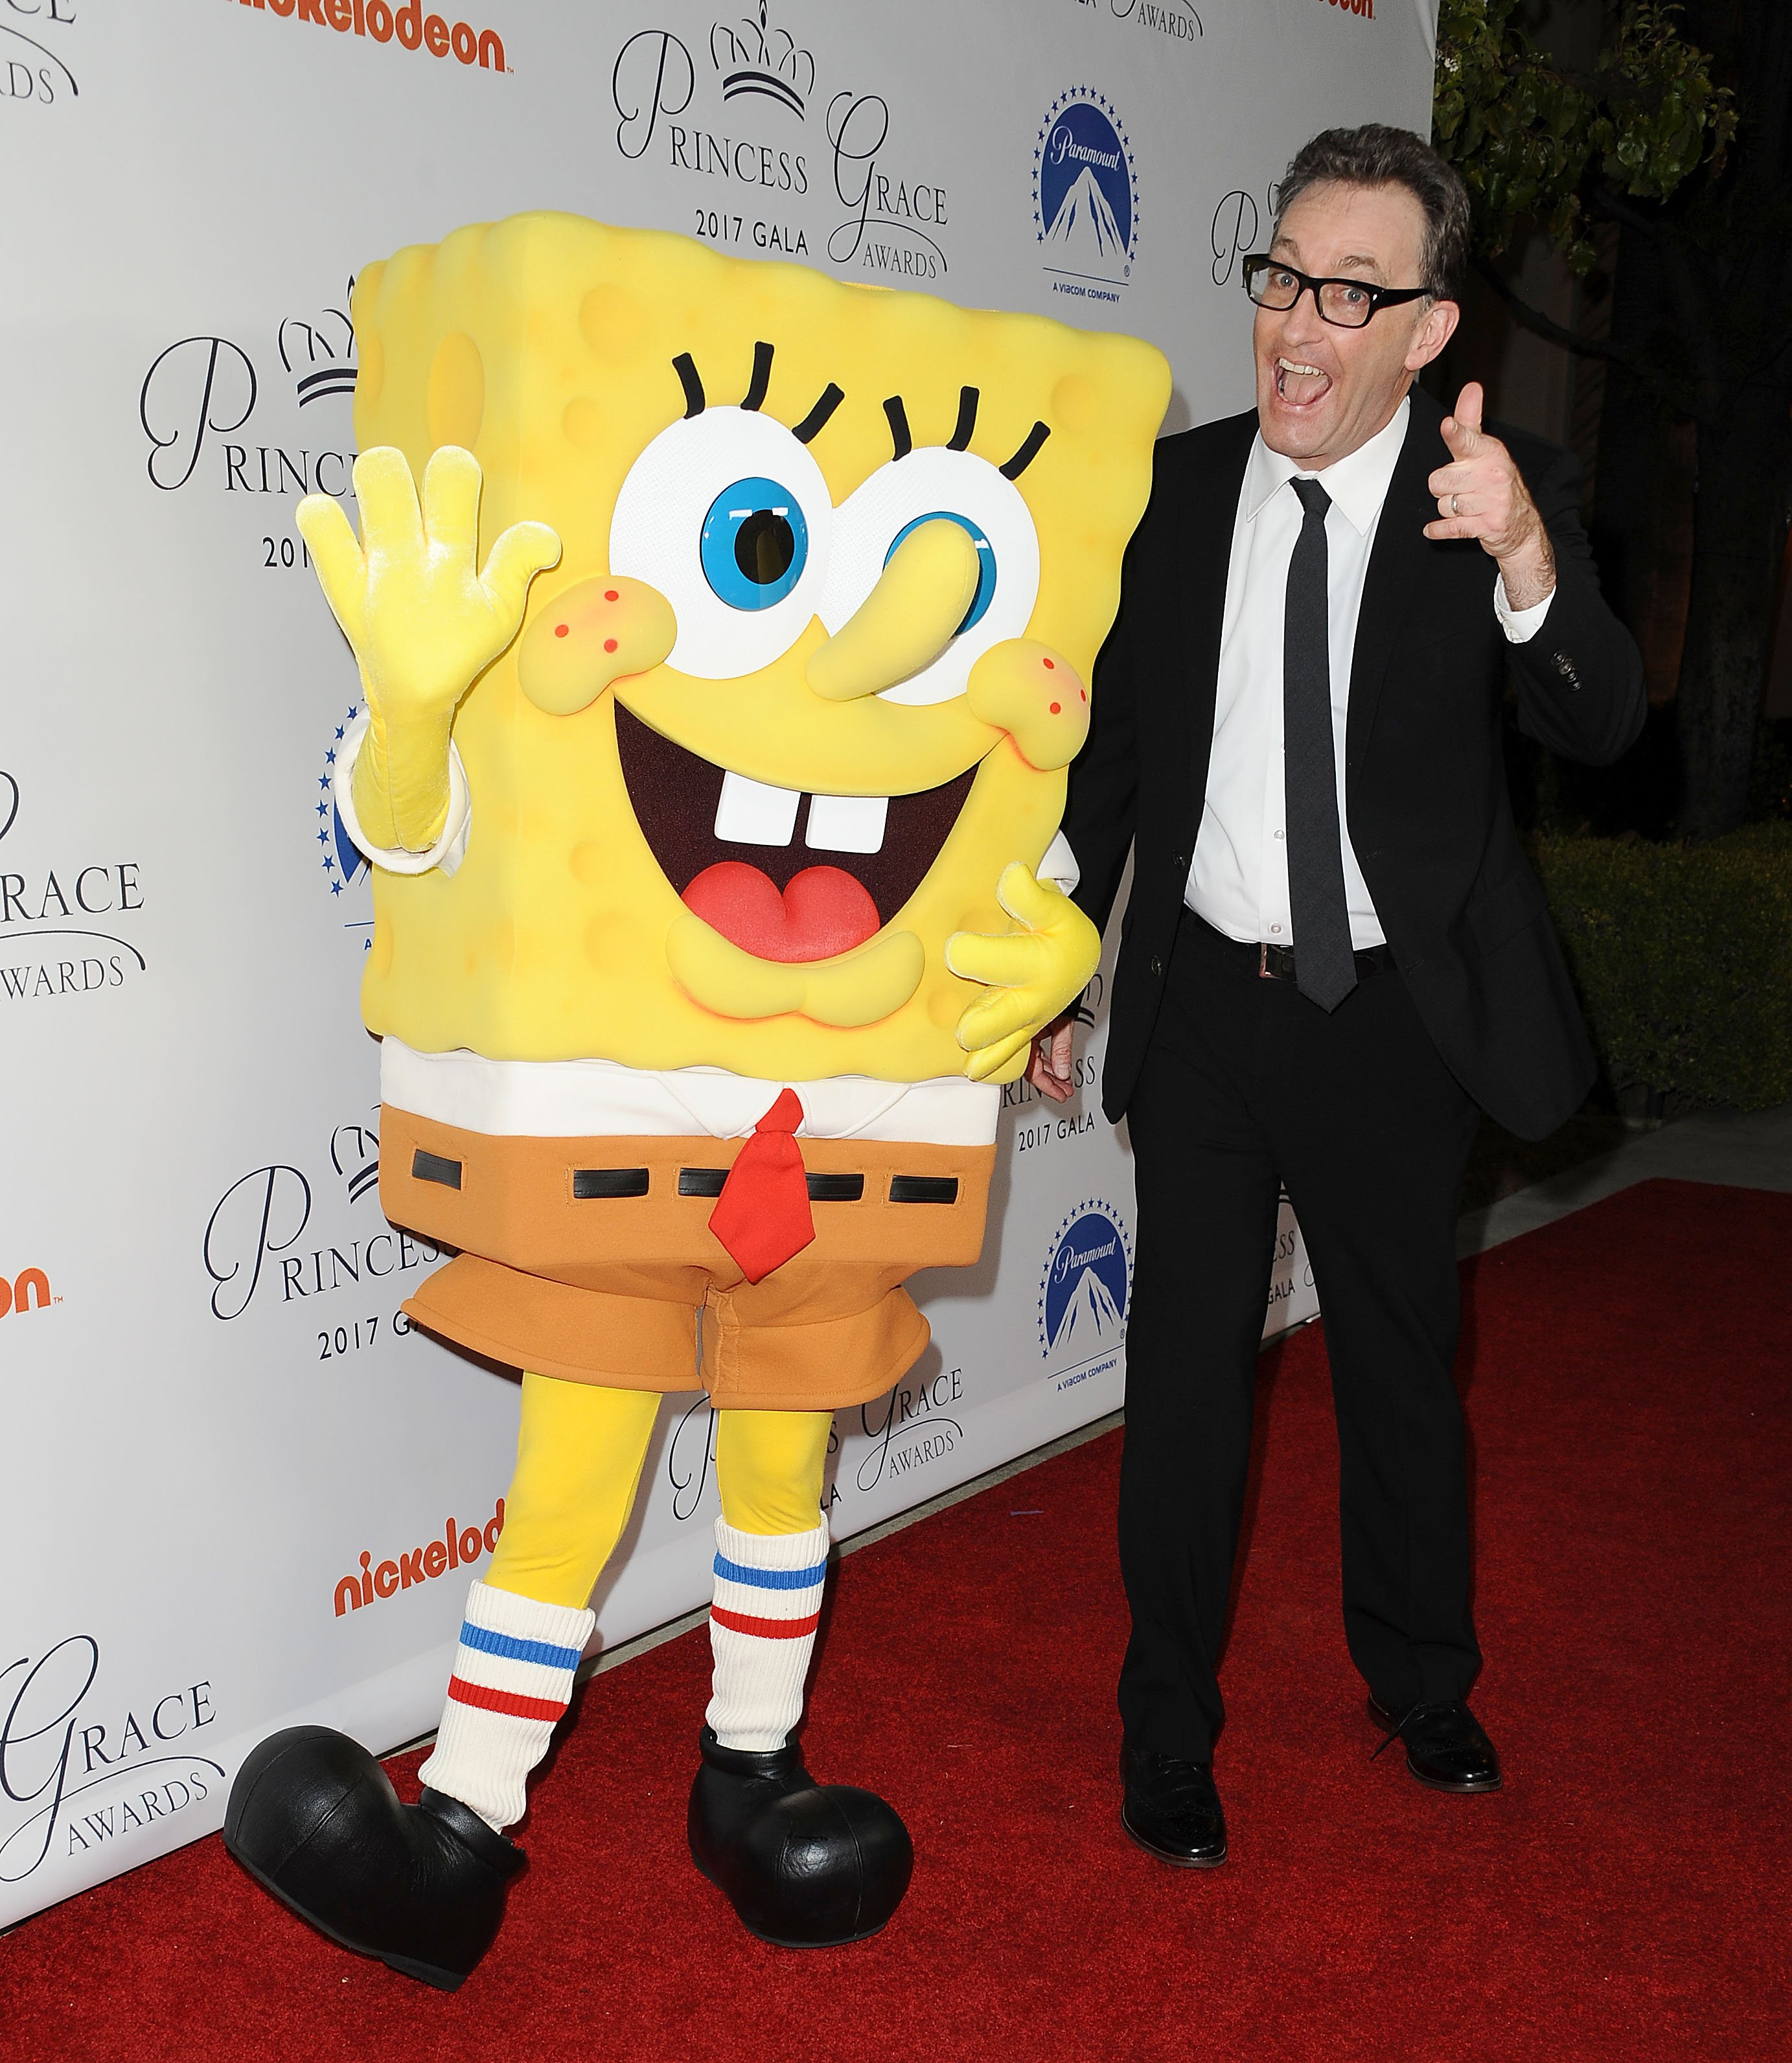 Tom Kenny attends the 2017 Princess Grace Awards gala kick off event at Paramount Pictures on October 24, 2017 in Los Angeles, California | Photo: GettyImages